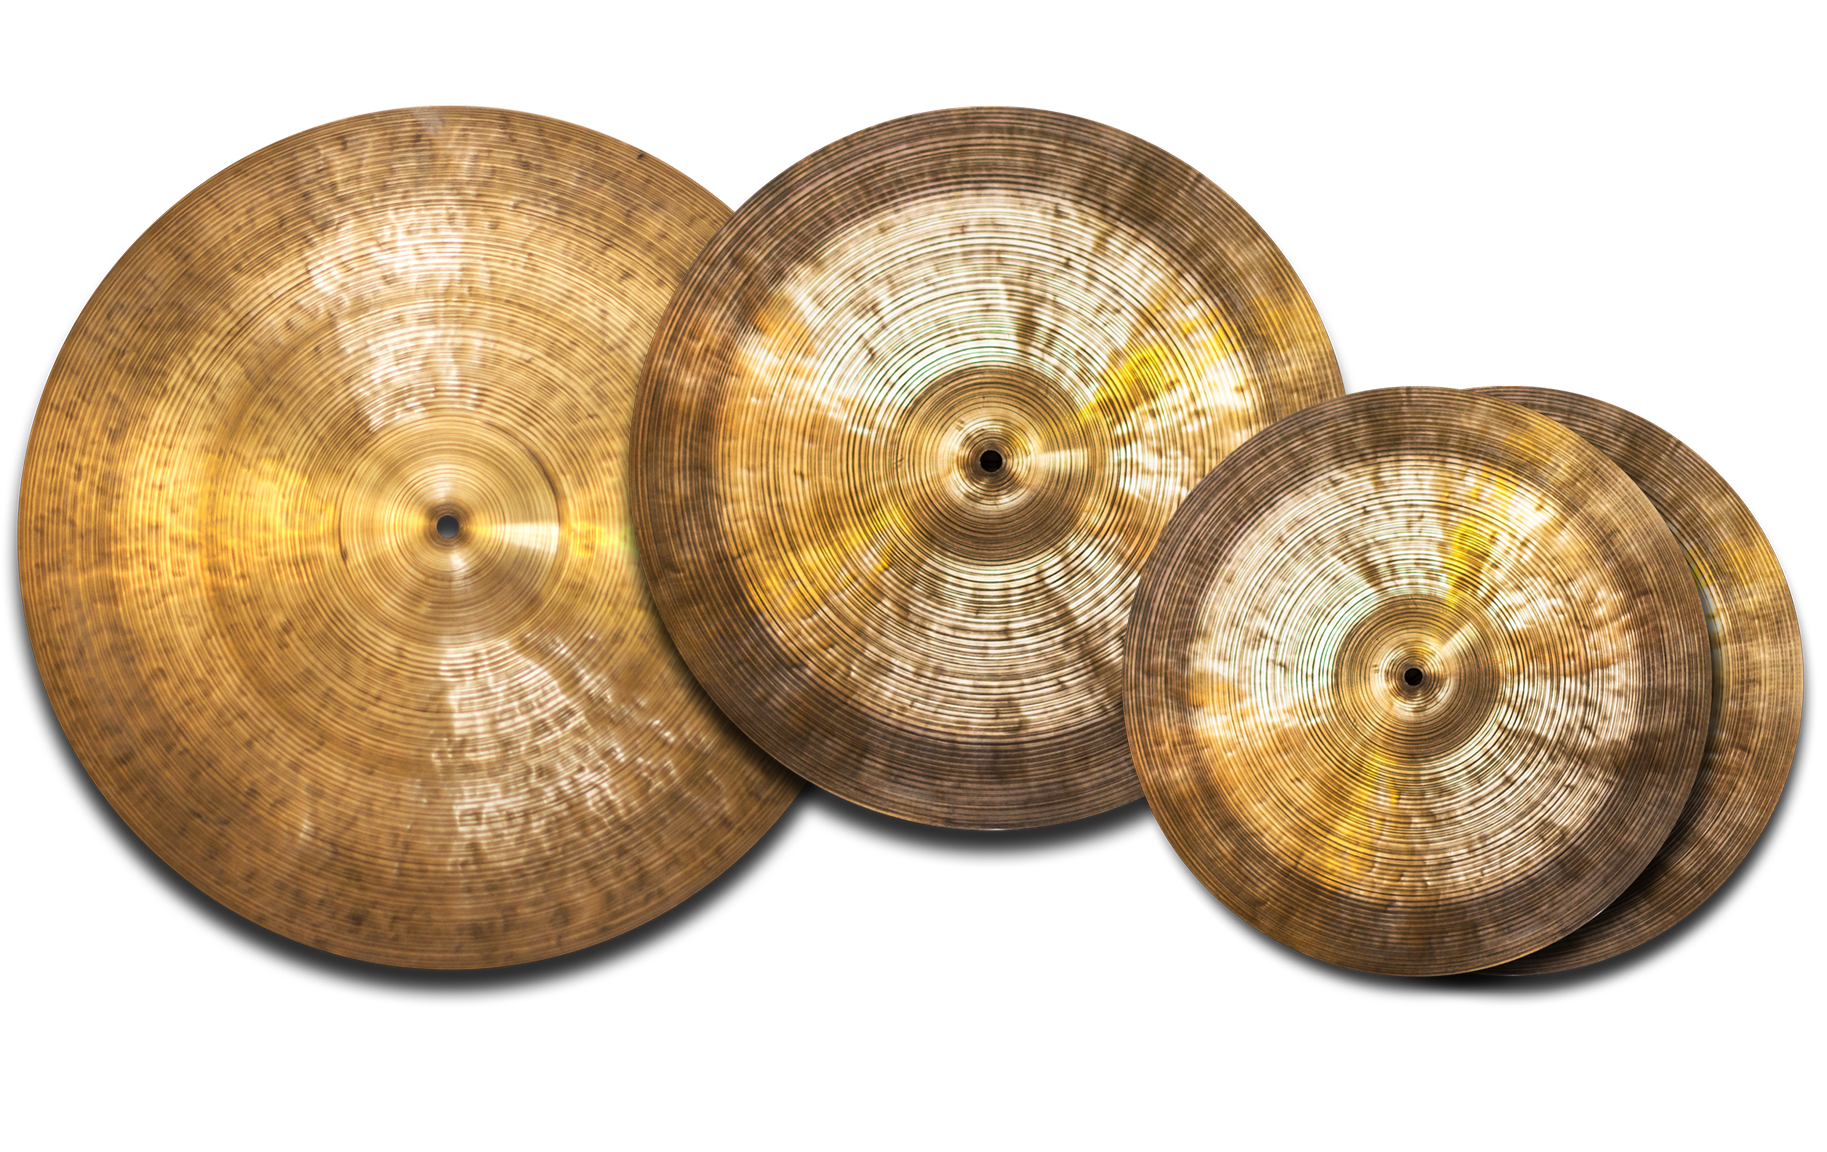 Cymbal & Gong Holy Grail Family